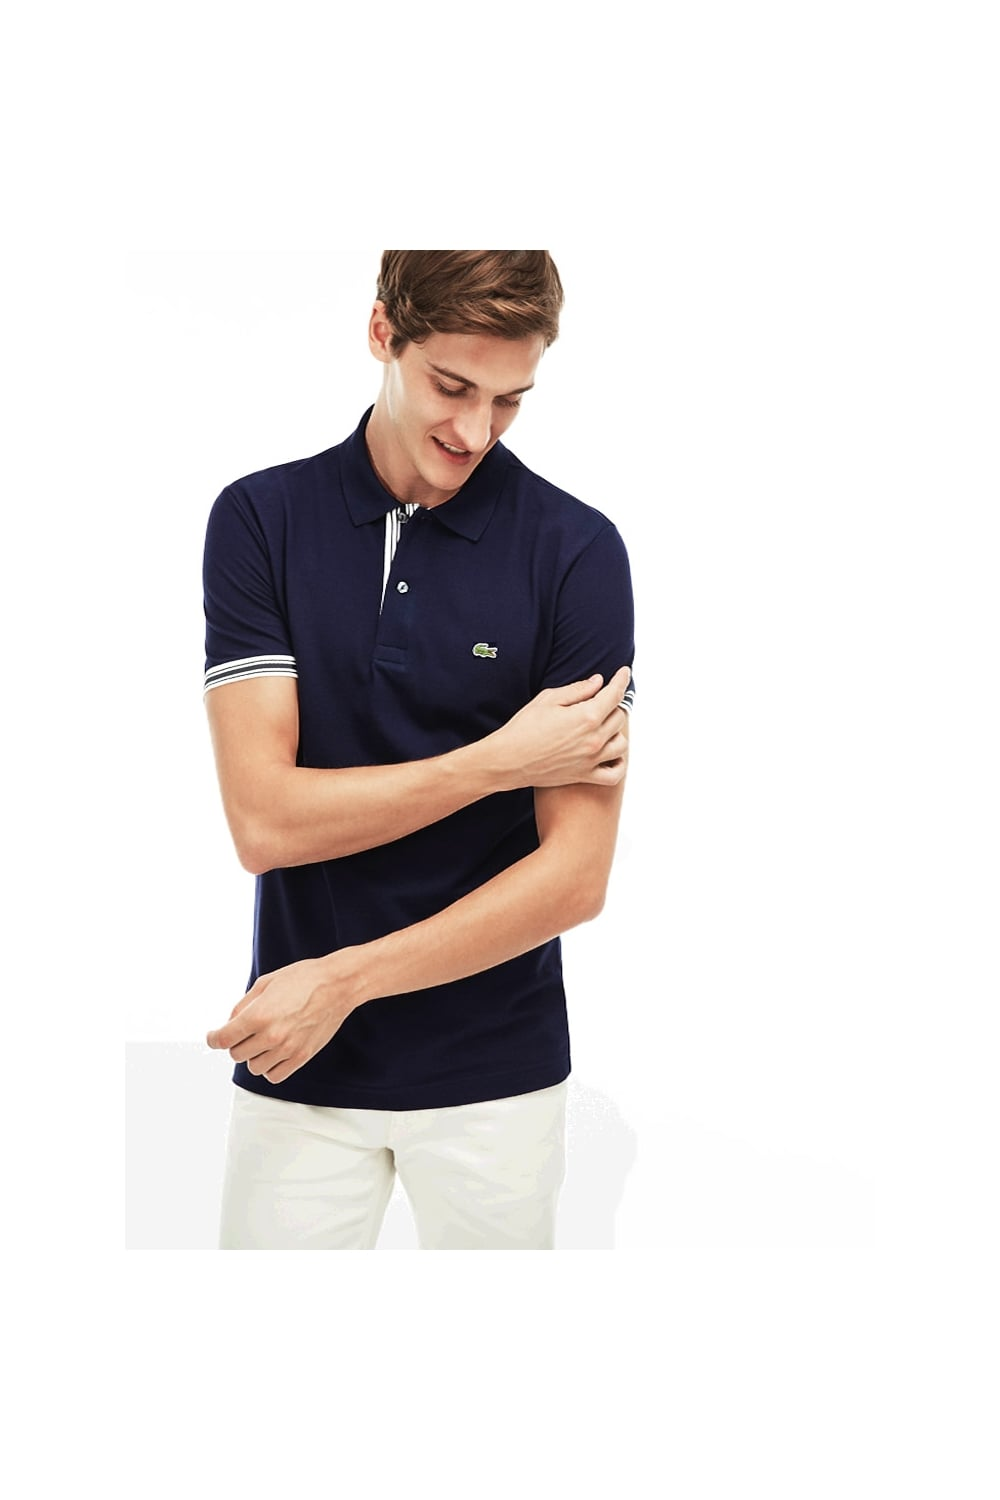 430ad11f1cd7 Lacoste Slim Fit Placket Detail Polo Shirt Navy - Clothing from ...